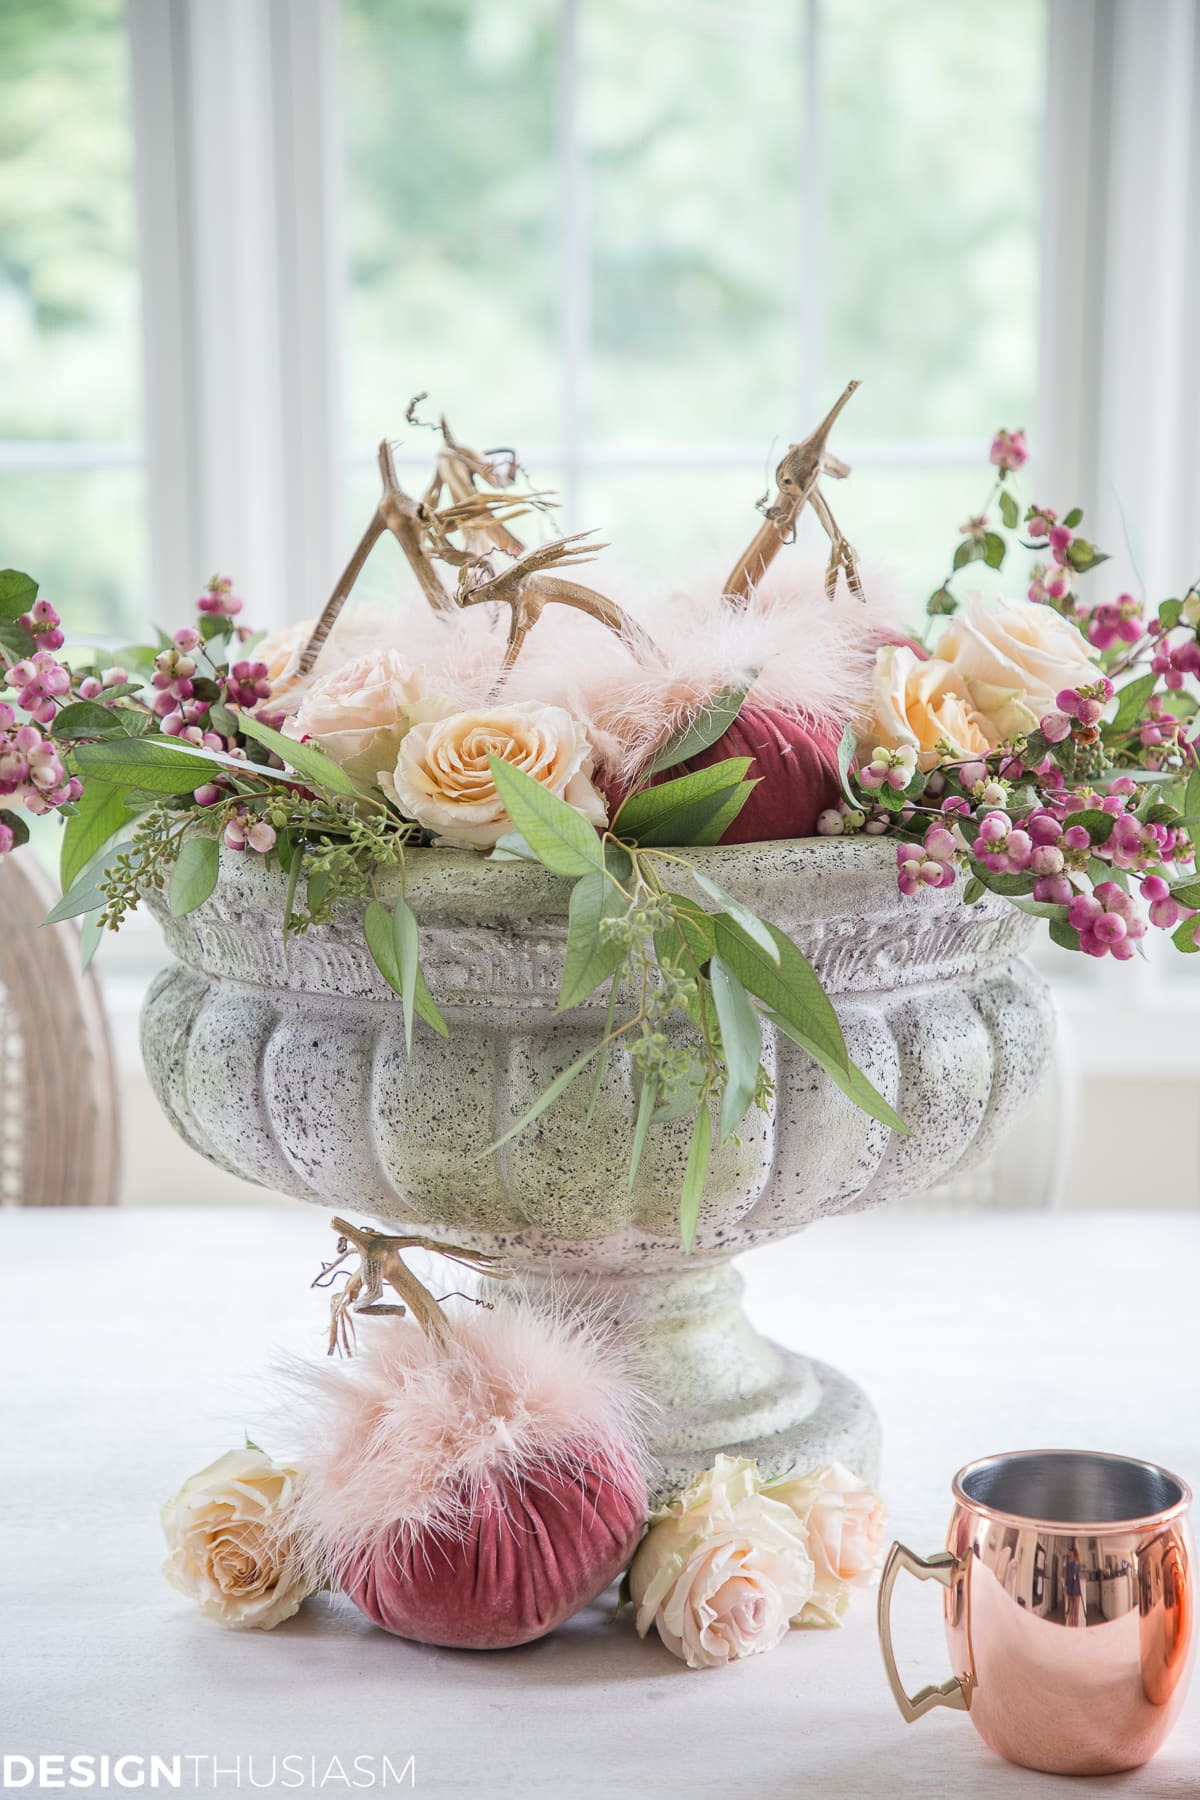 Fall Centerpieces: 5 Easy Steps to Create a Beautiful Pumpkin Centerpiece